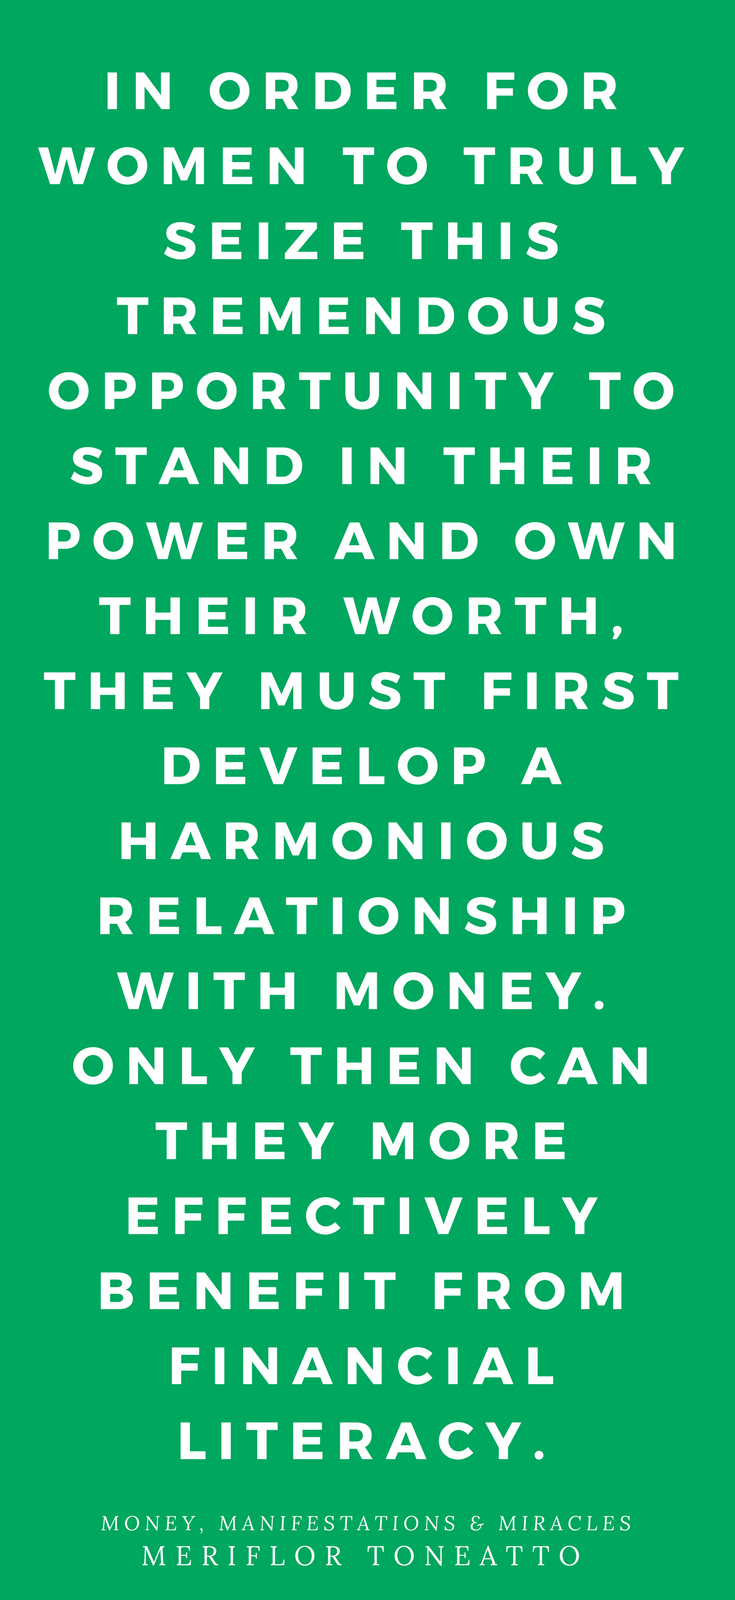 Money, Manifestations + Miracles • A Guide to Transforming Women's Relationships with Money • Meriflor Toneatto • New World Library • Book Review • Peace to the People • Business